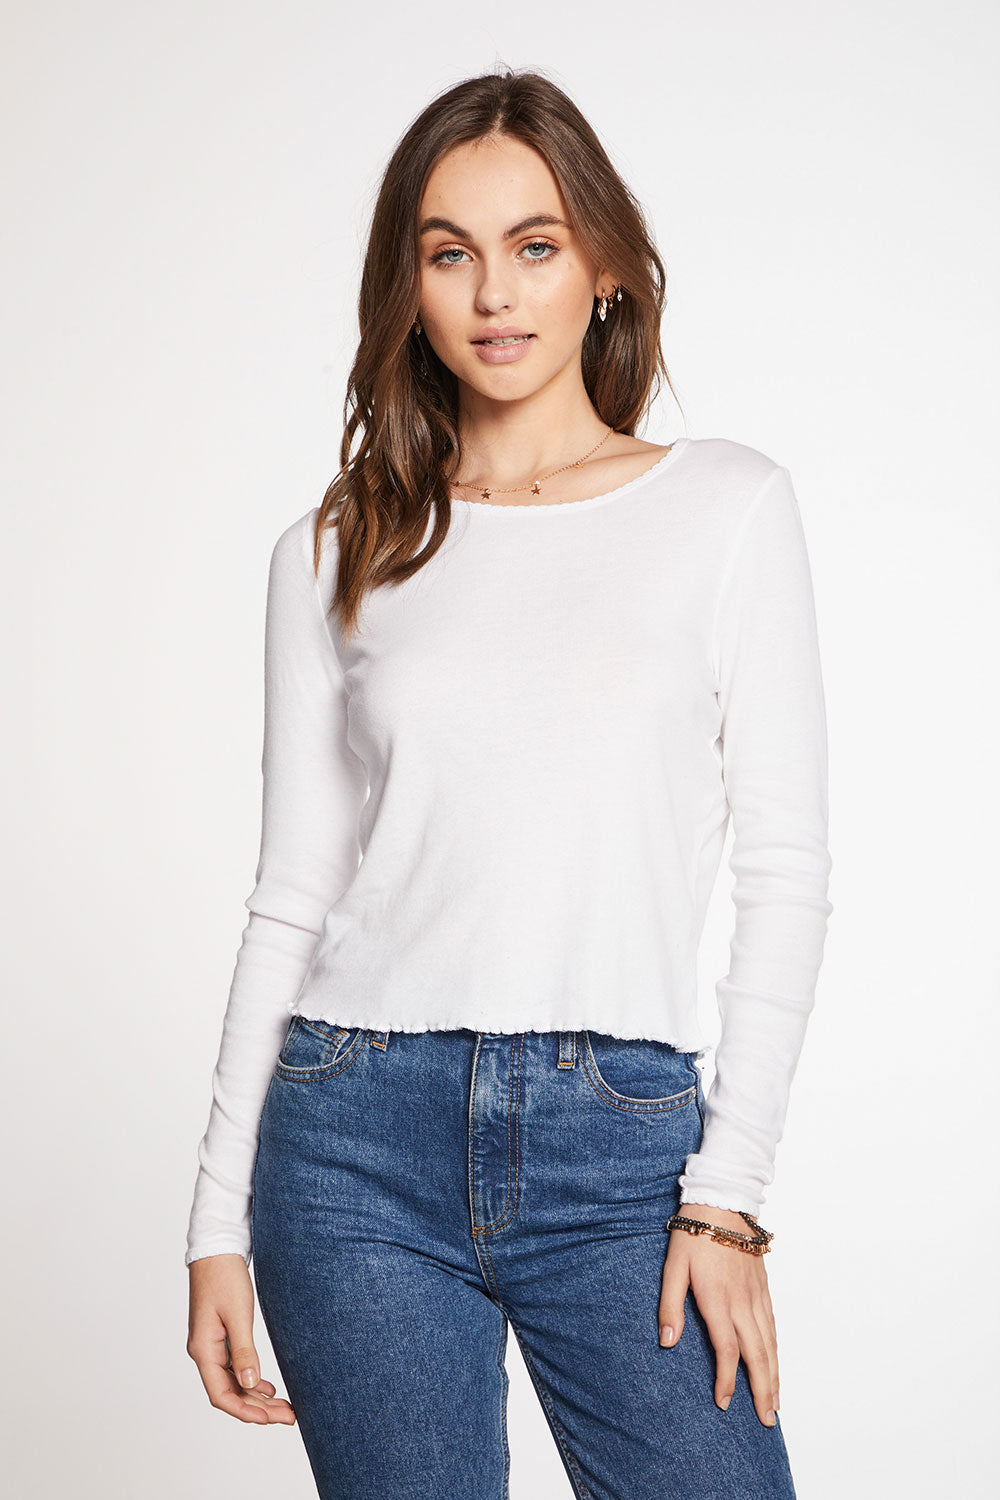 Baby Rib Scallop Edge Long Sleeve Crew Neck Tee